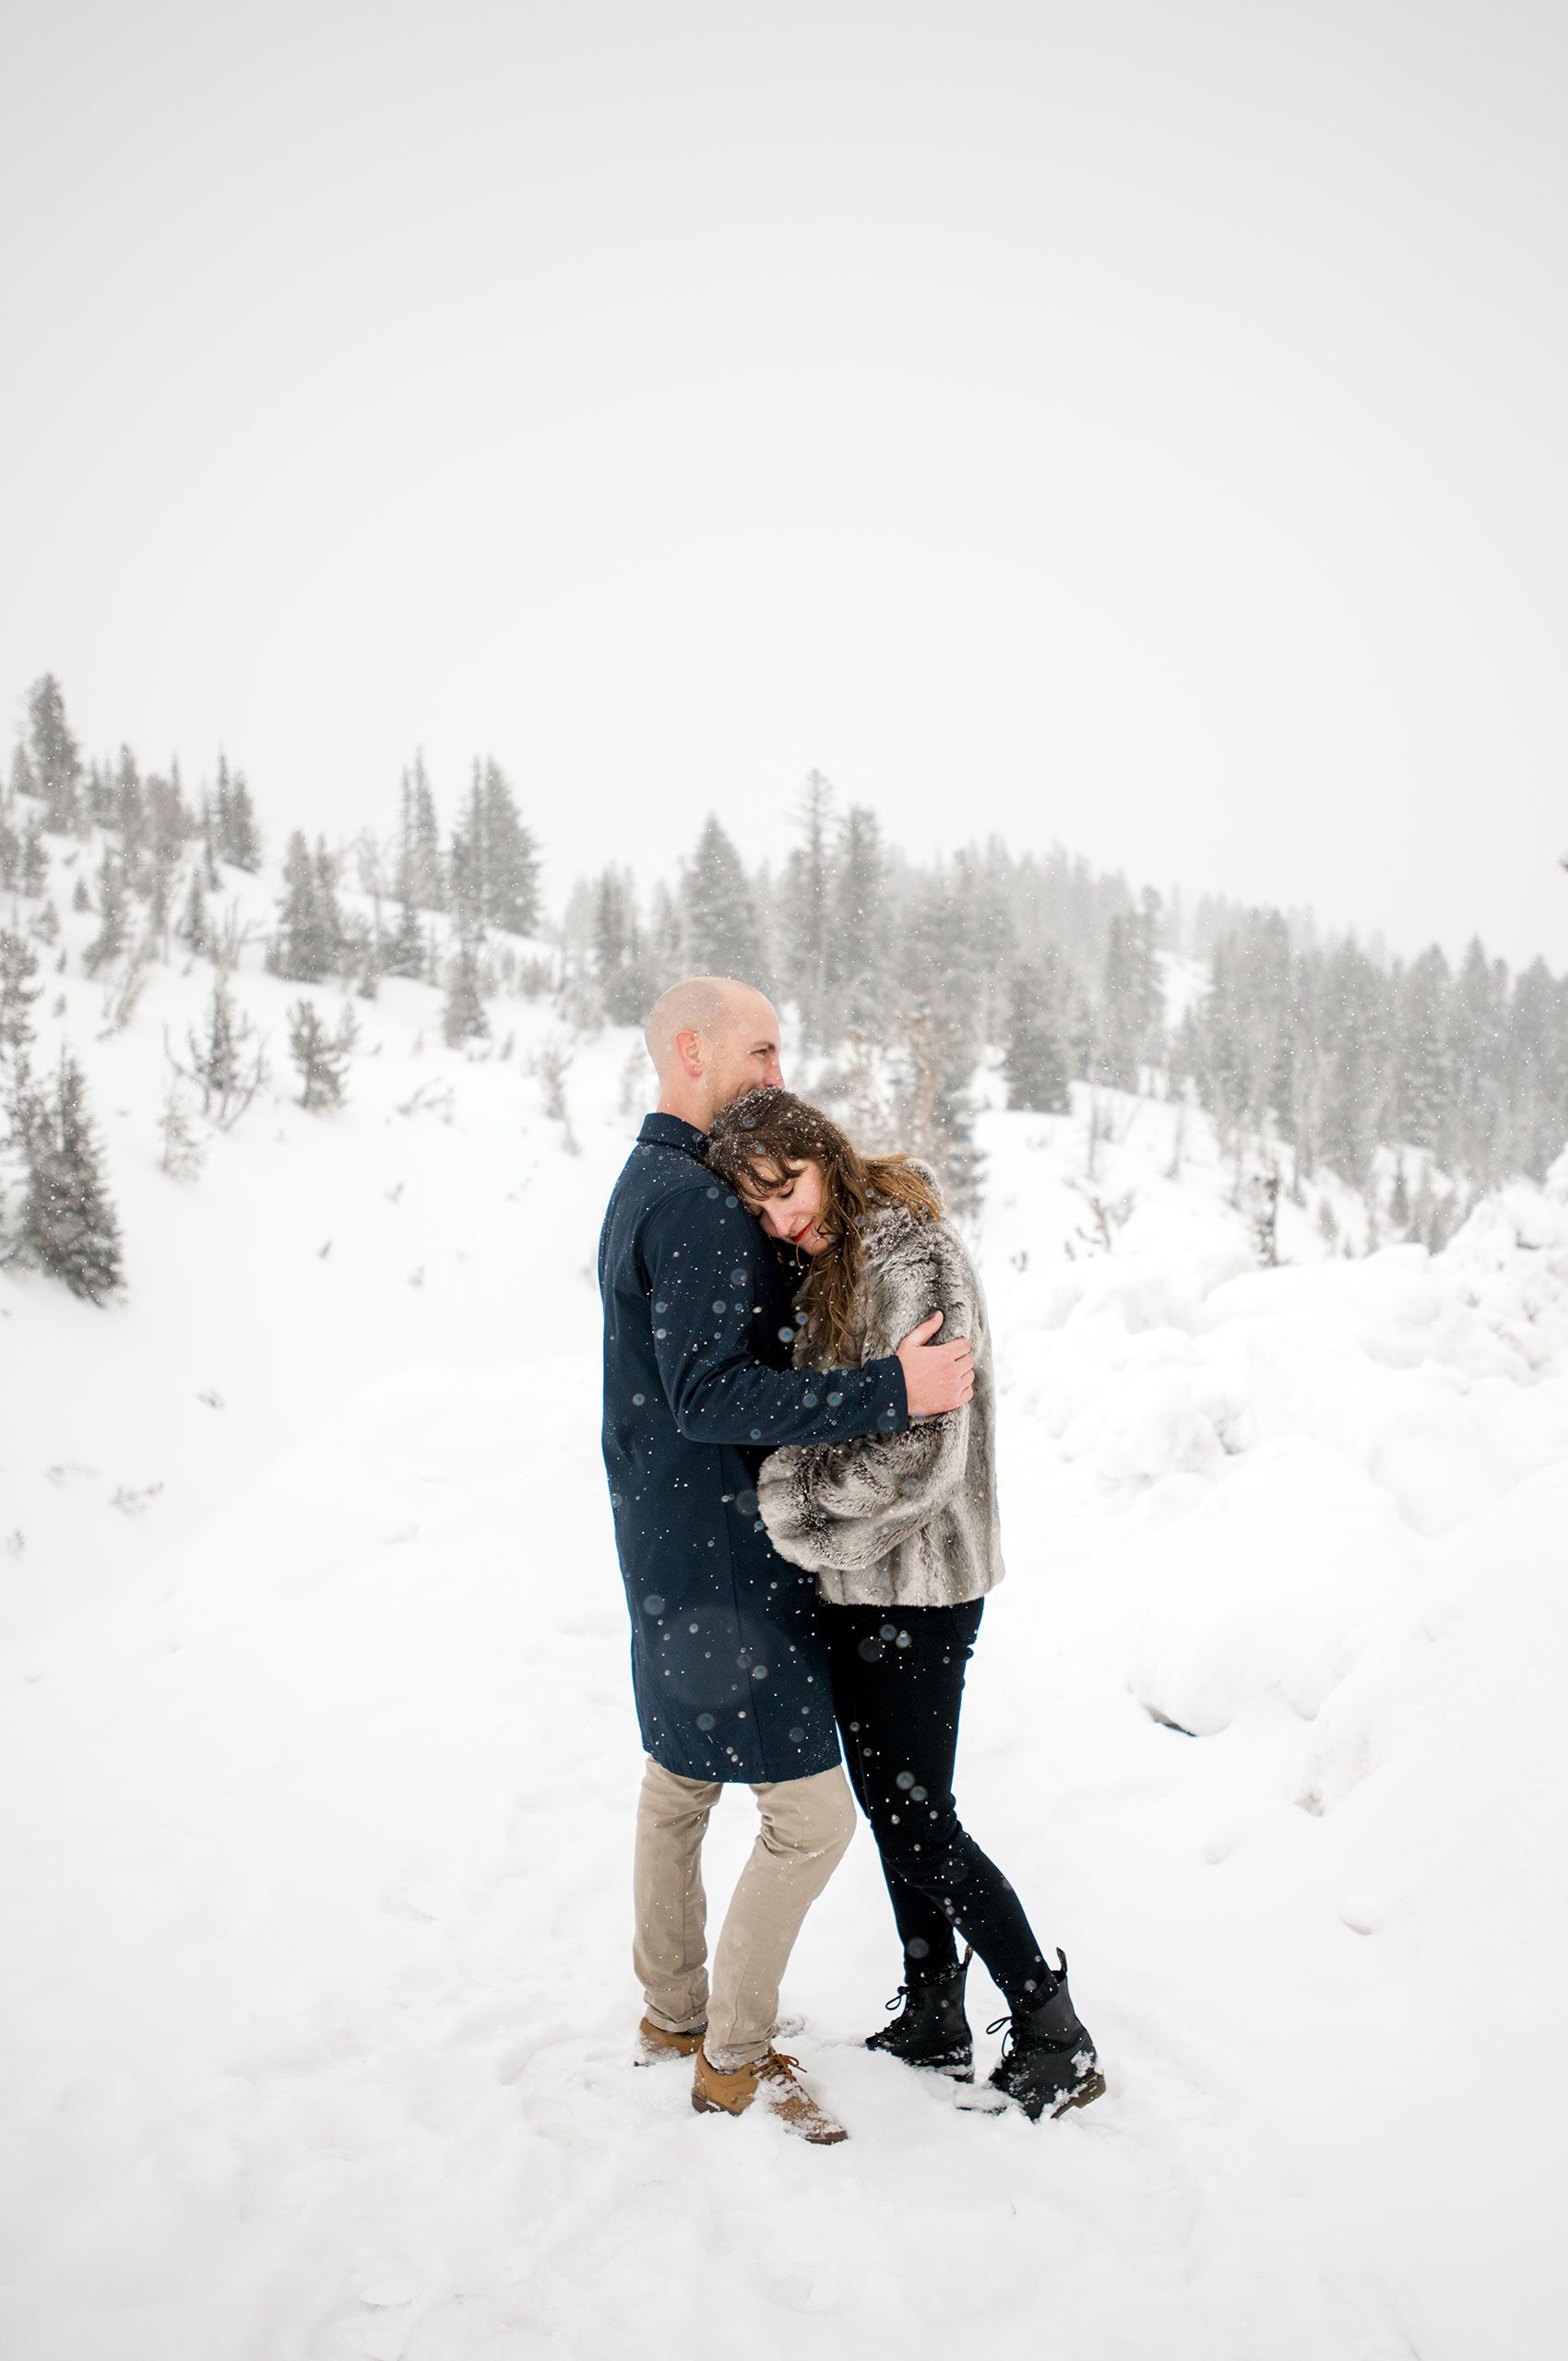 Snowy engagement photos at Timberline